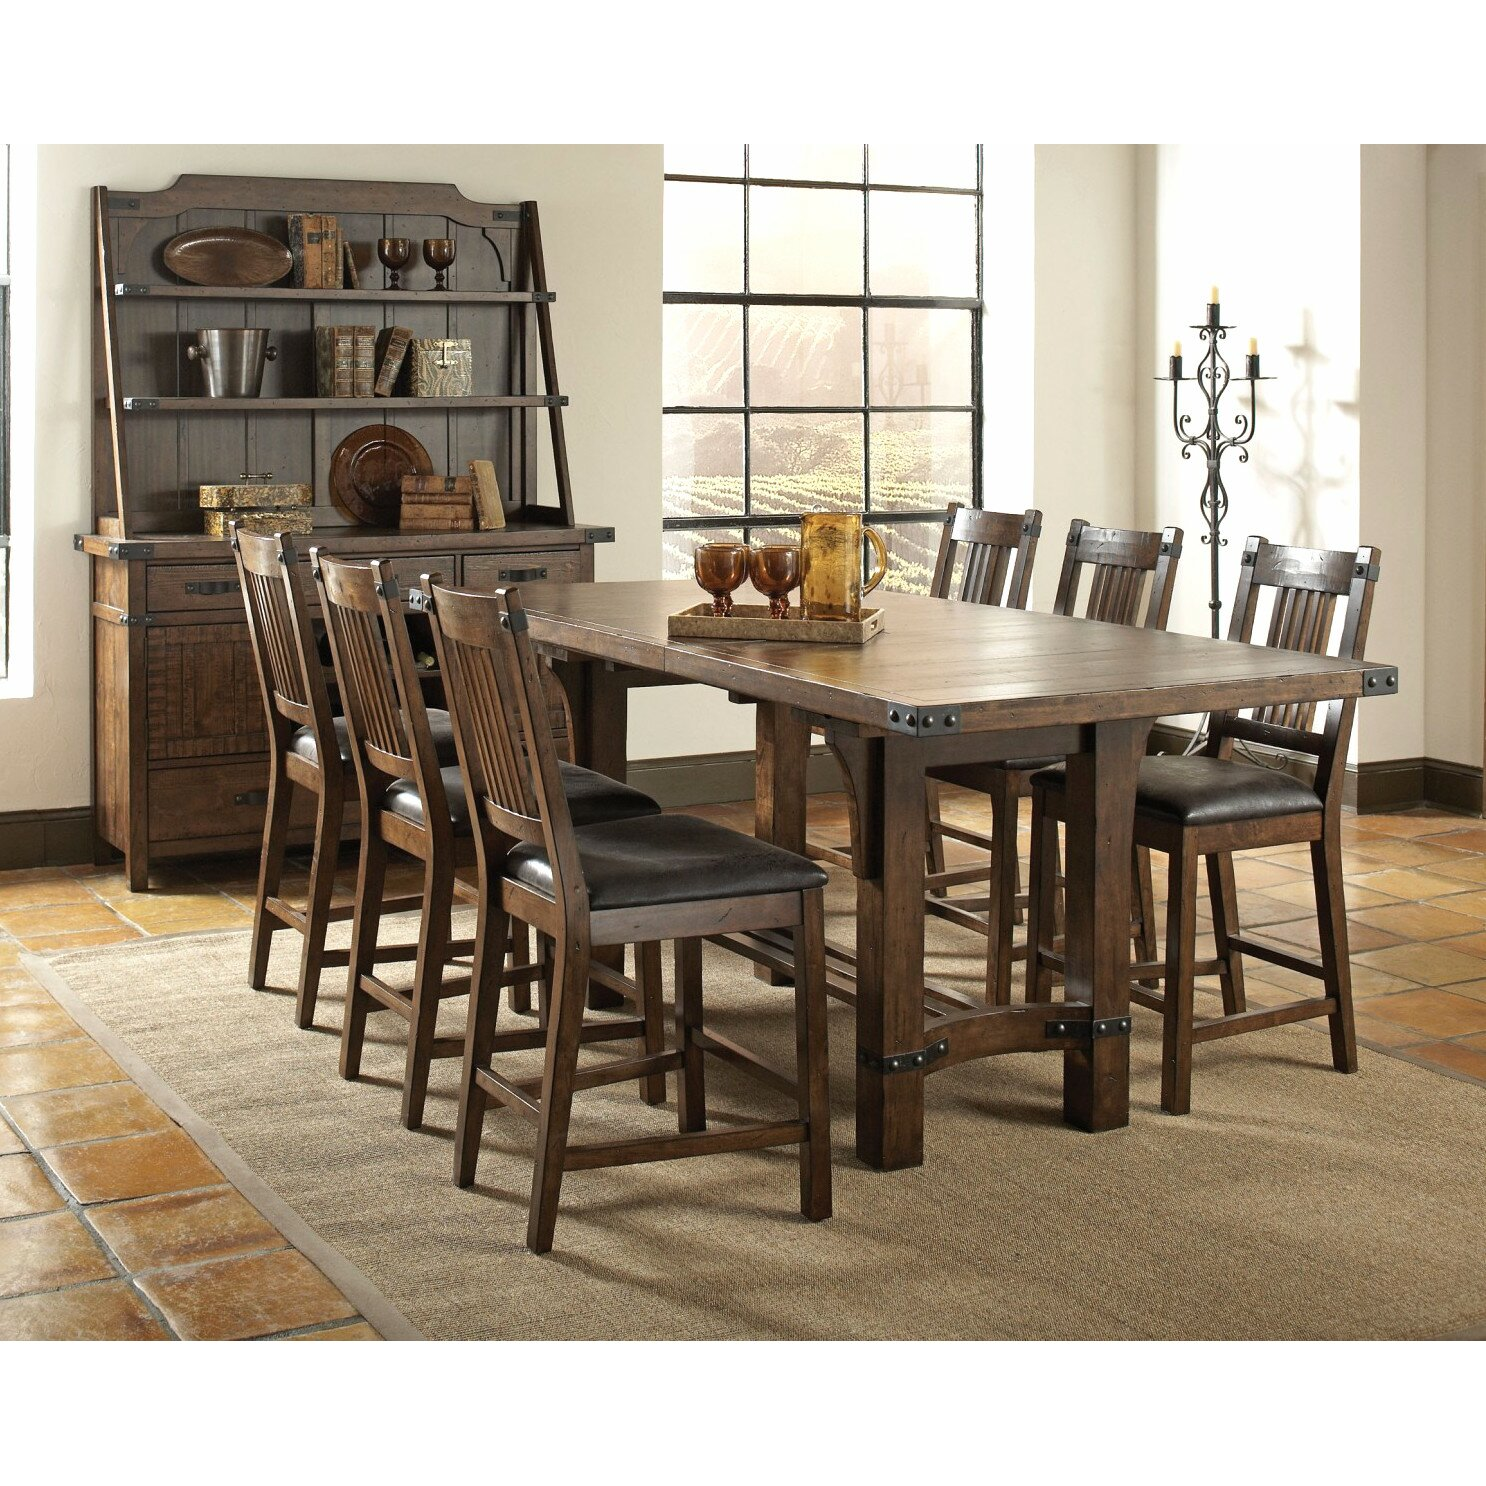 7 Piece Counter Height Dining Room Sets: Infini Furnishings 7 Piece Counter Height Dining Set